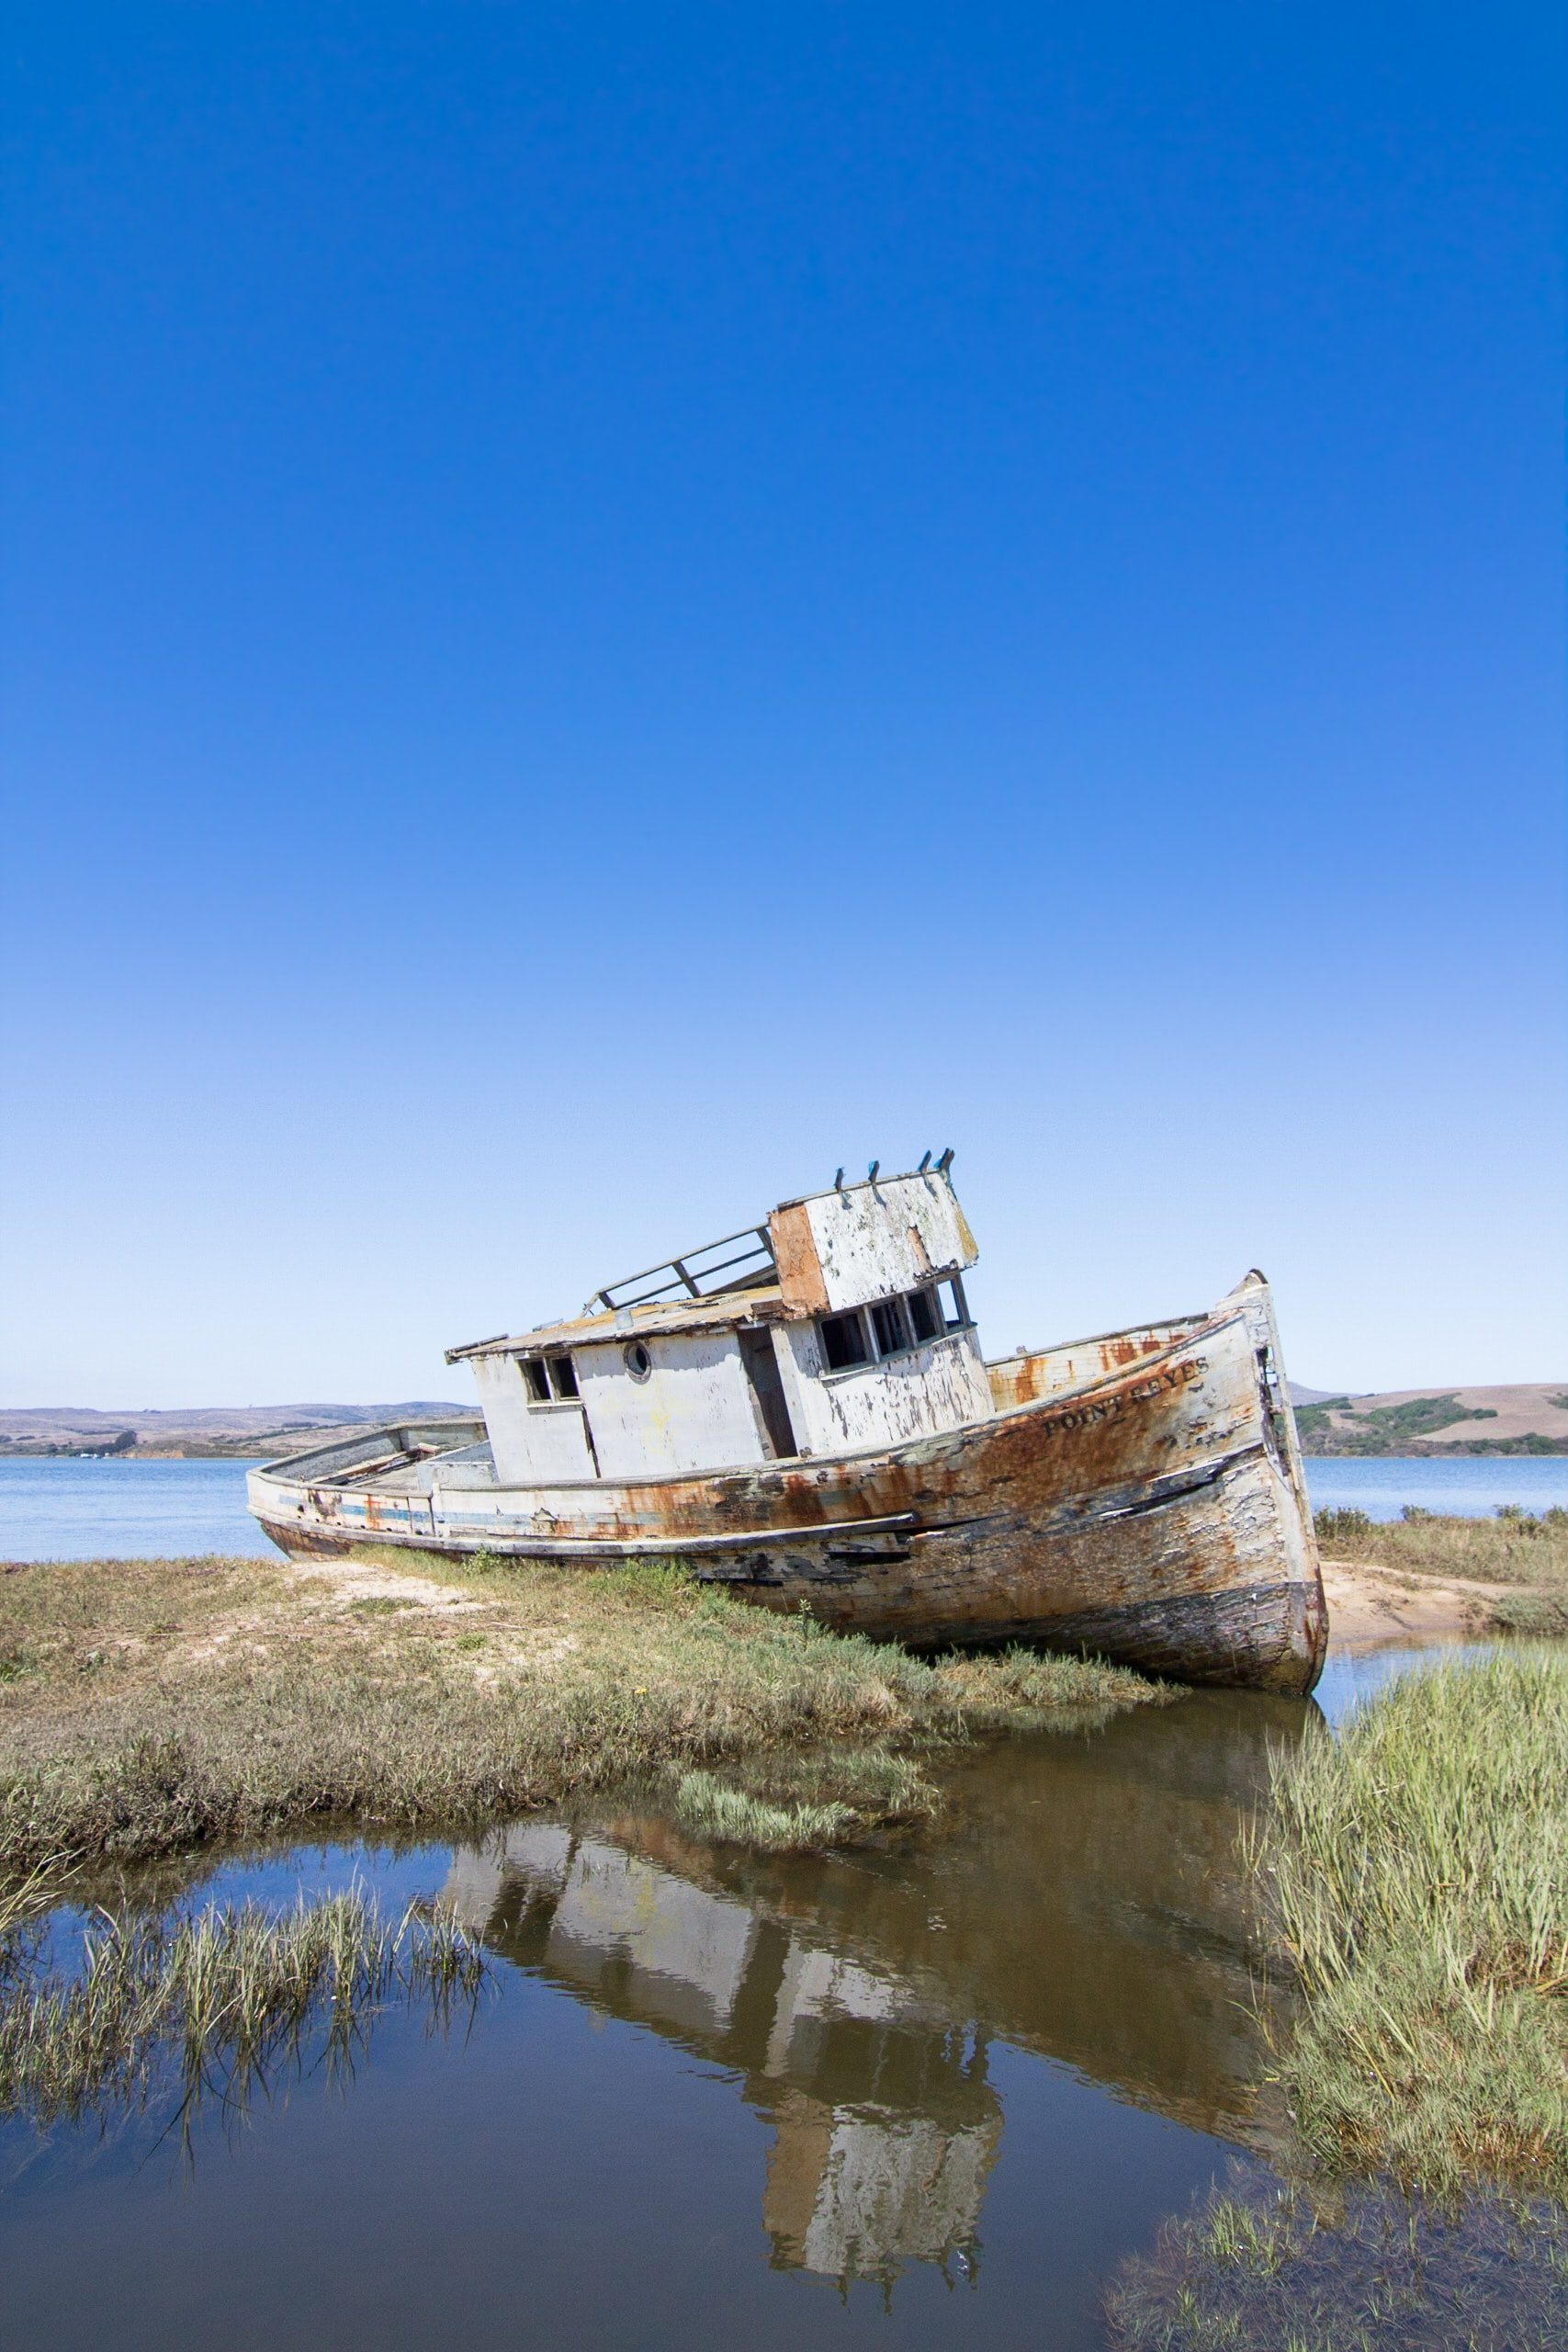 abandoned boat beside green grass field